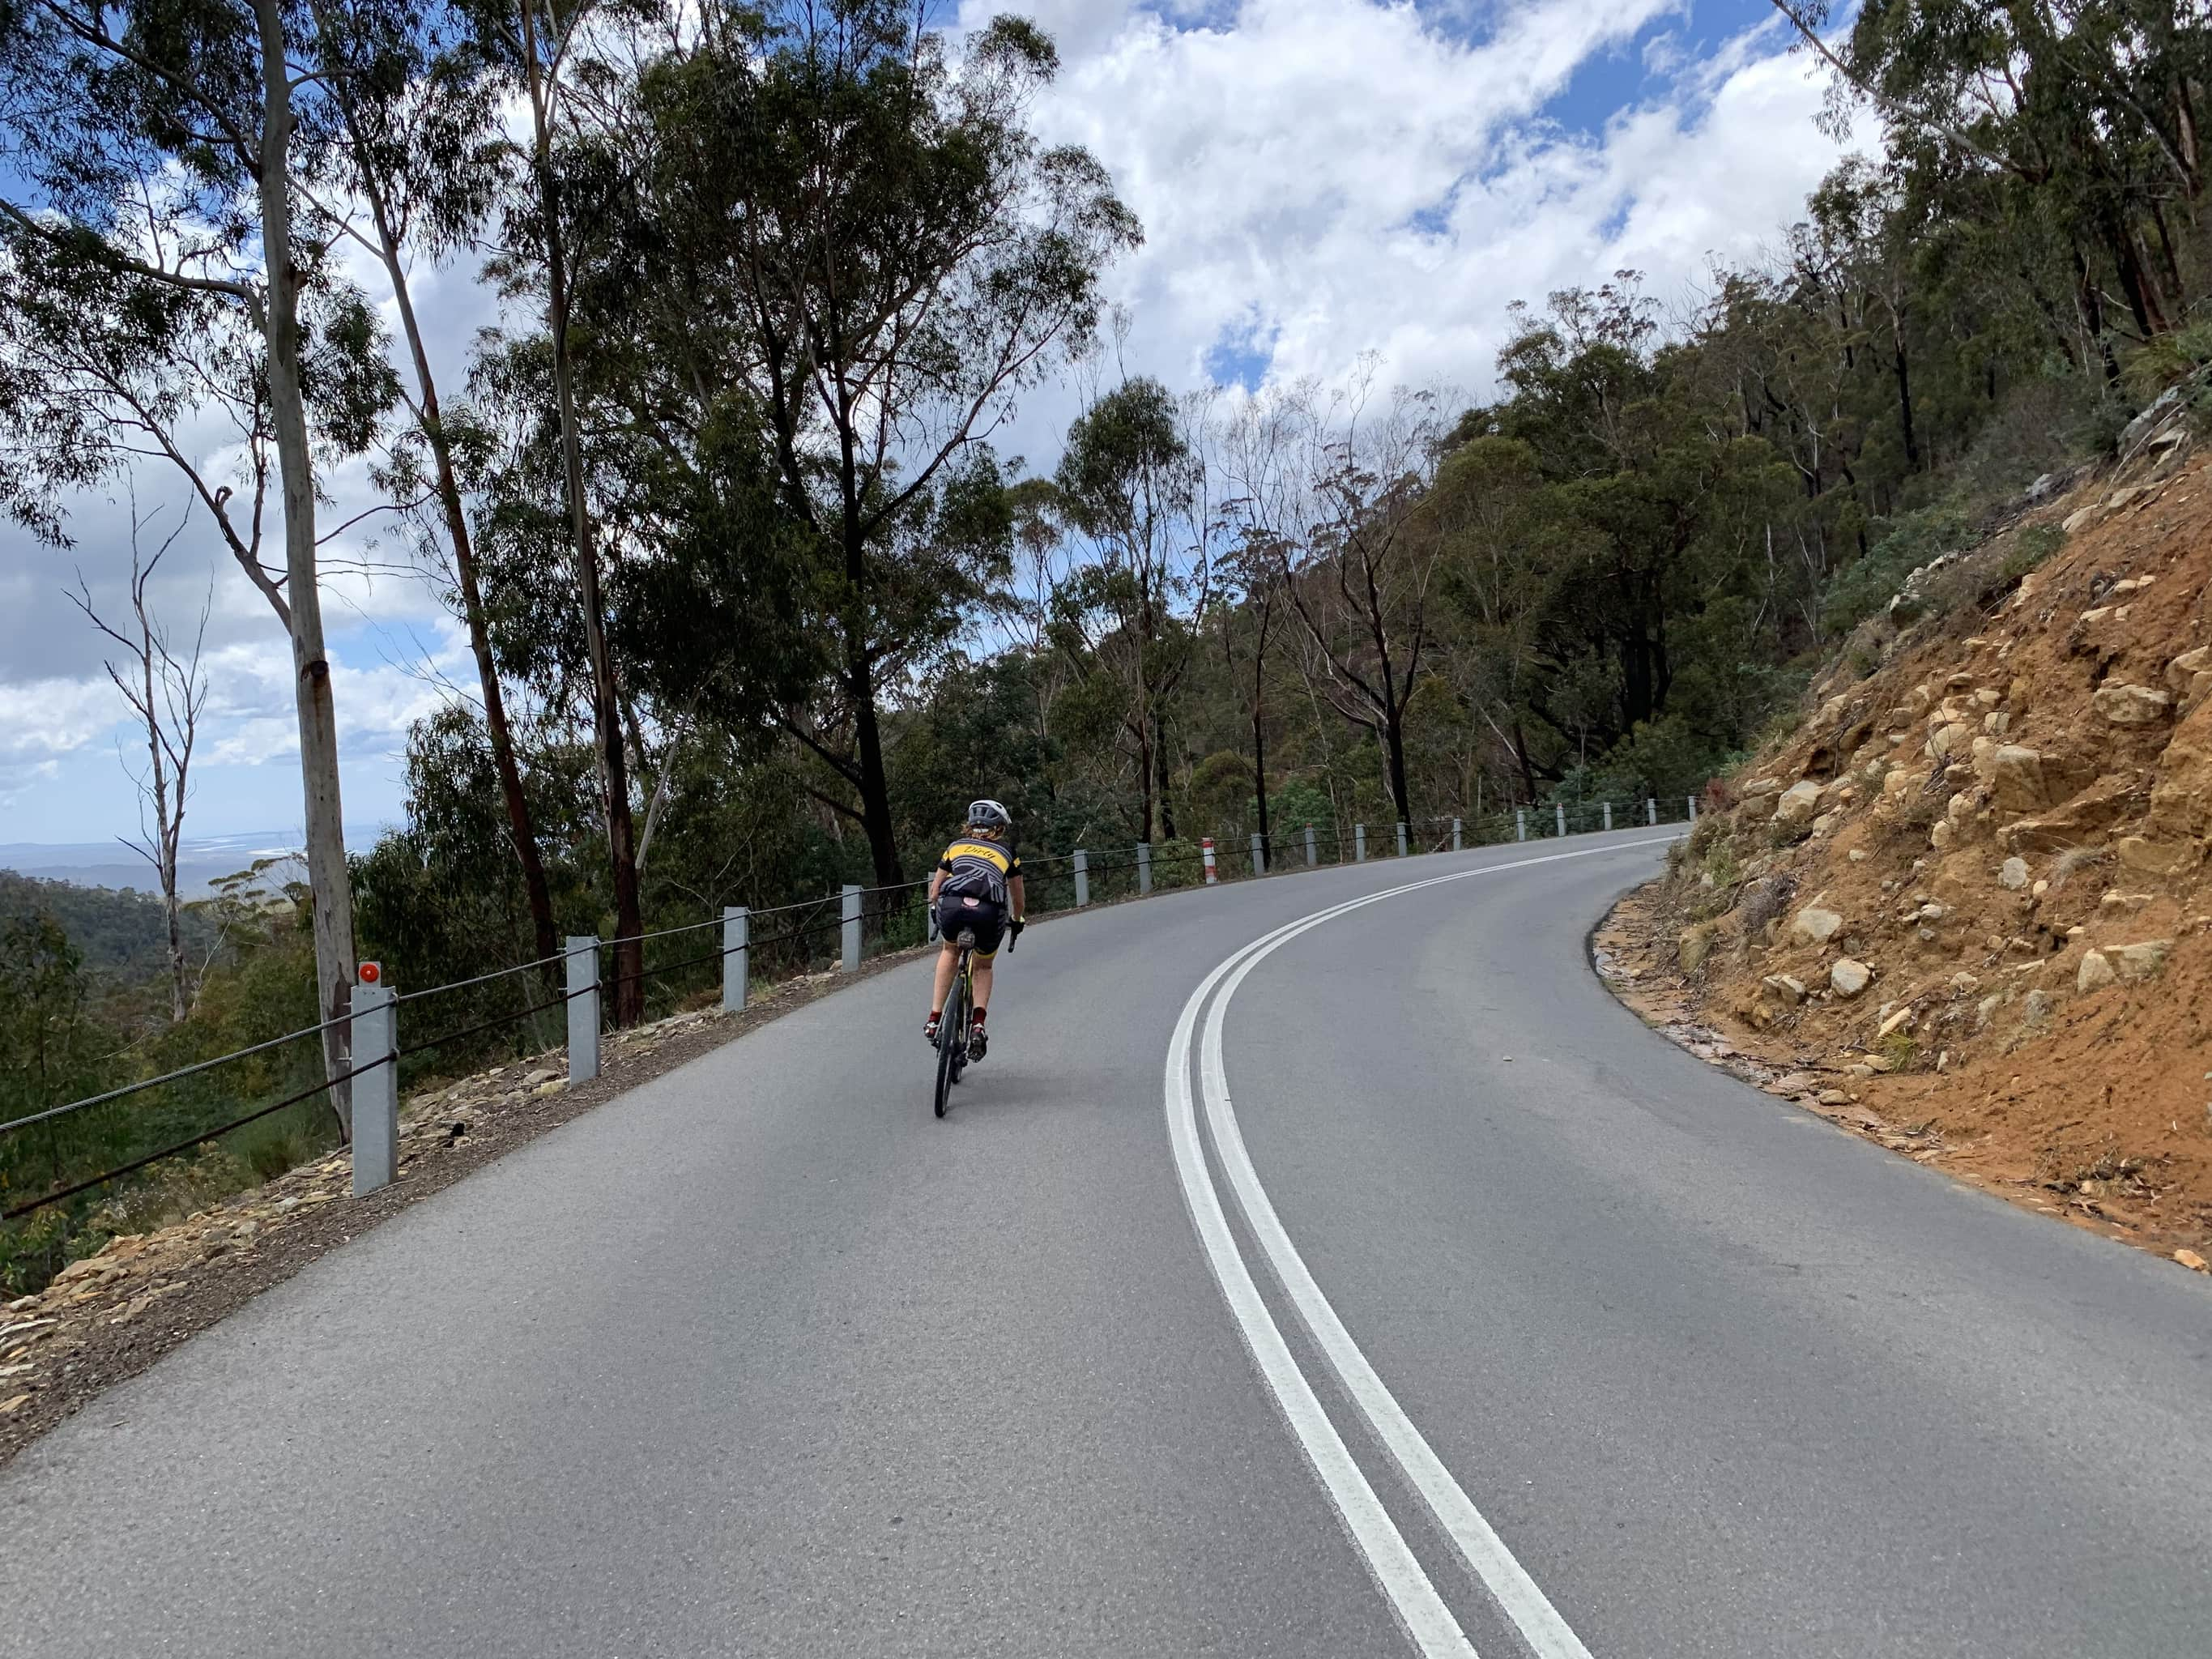 Bike rider near the bottom of St. Marys pass on paved road with views of the ocean to the left.